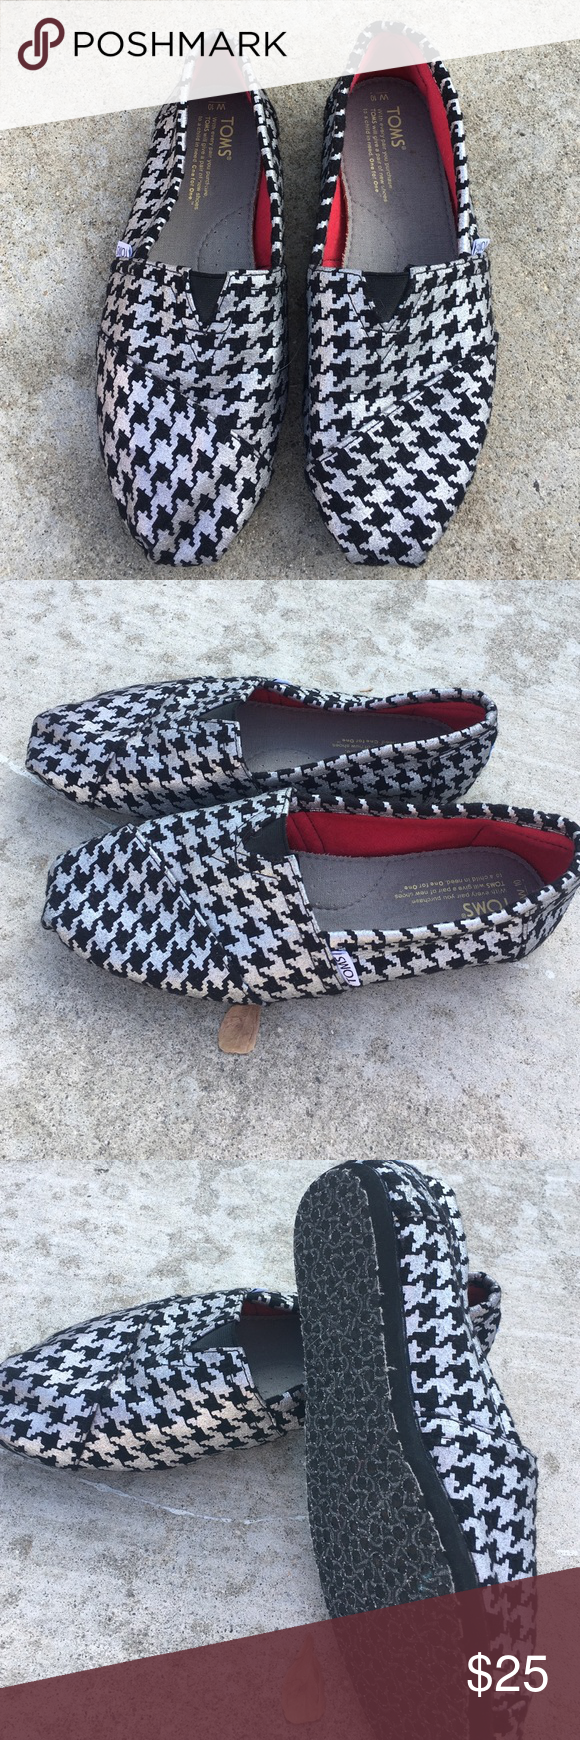 Toms Metallic silver with black. Size W10 TOMS Shoes Flats & Loafers